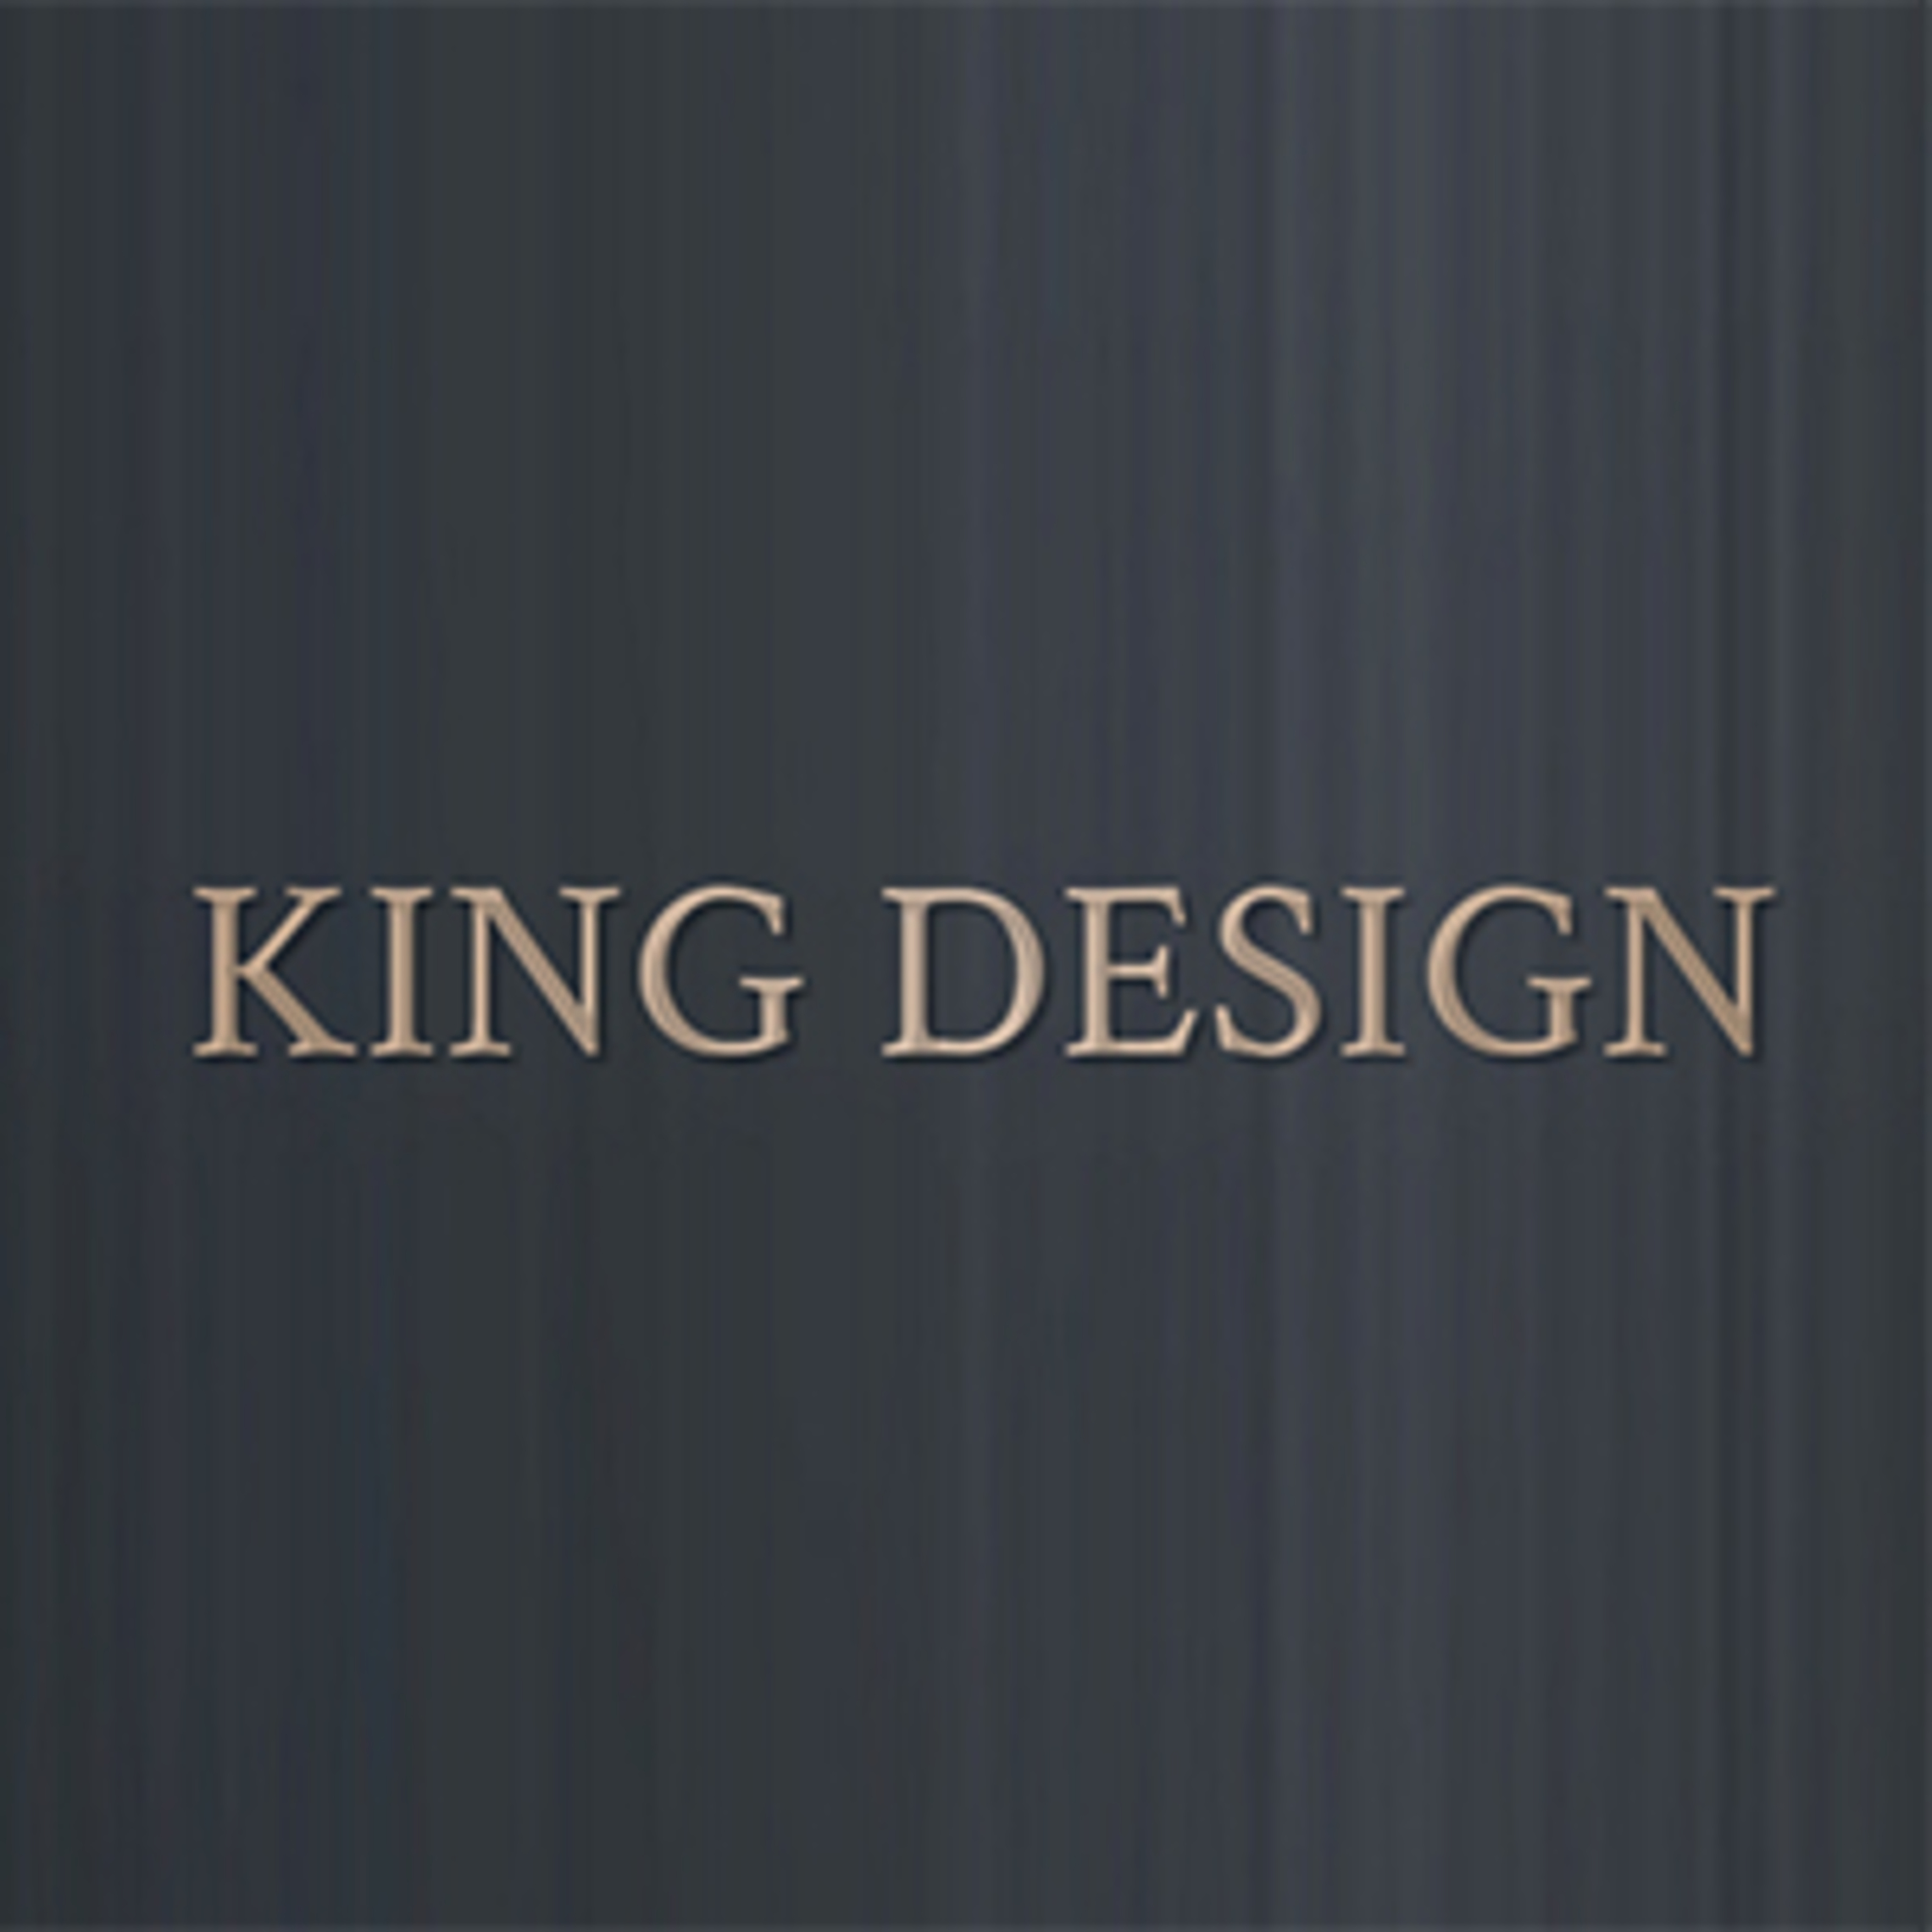 king design- company logo